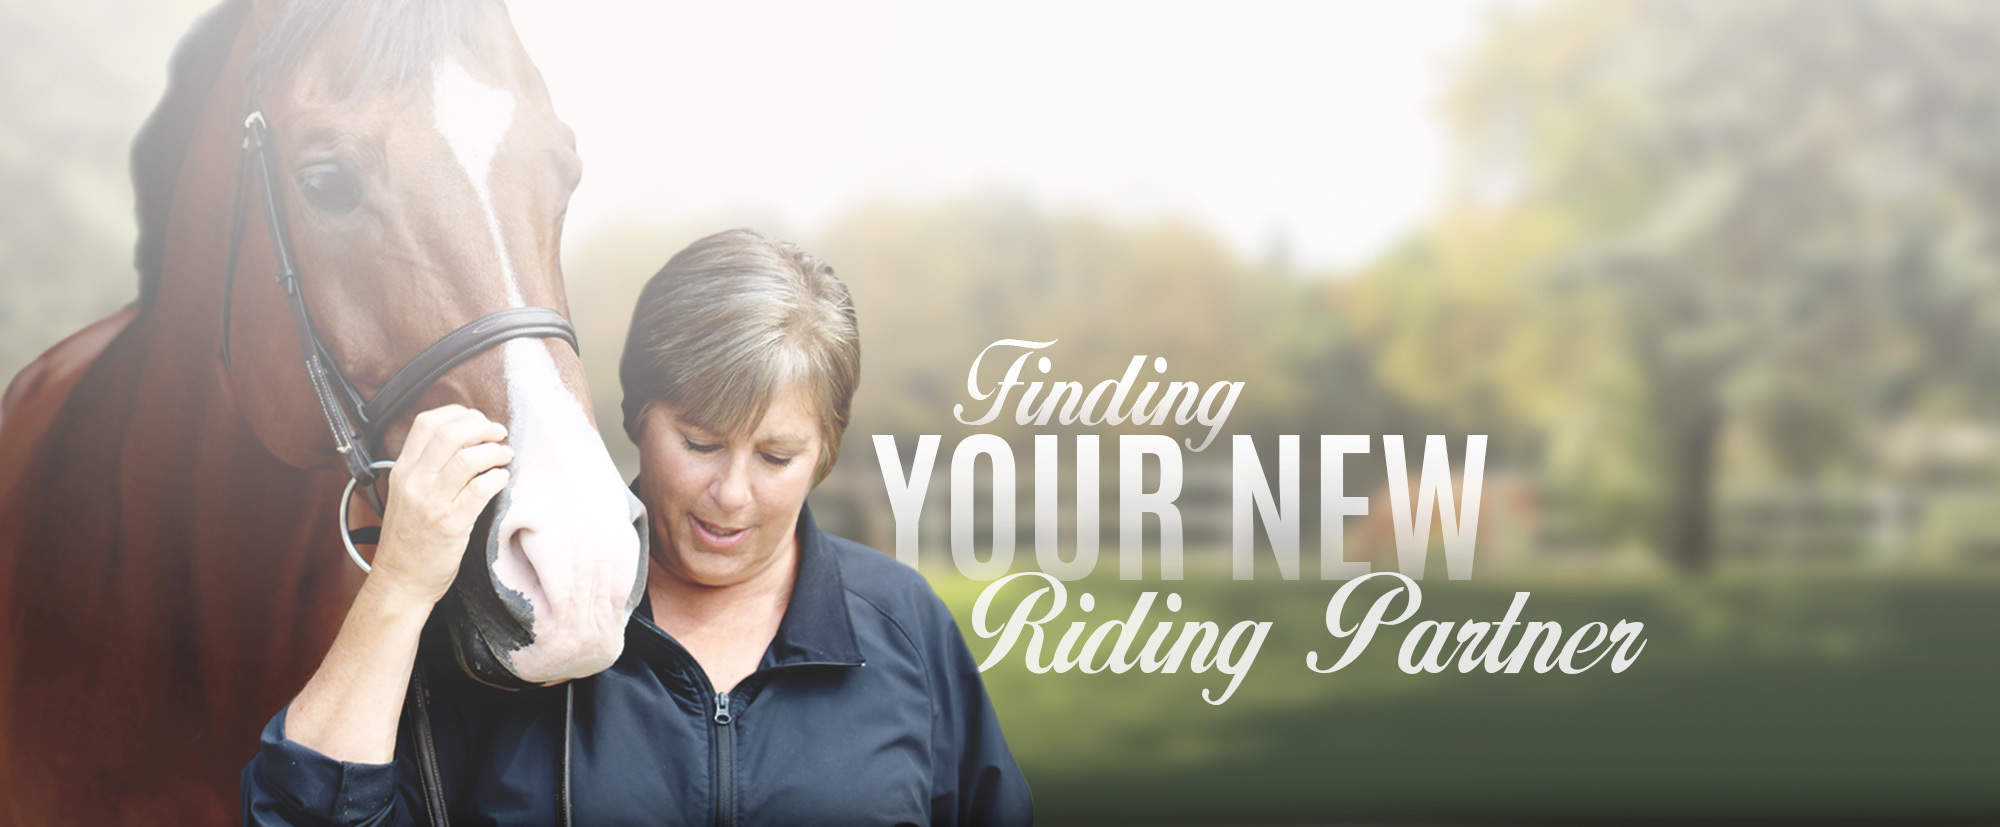 Finding your new riding partner at Galway Farm Long Grove, Illinois